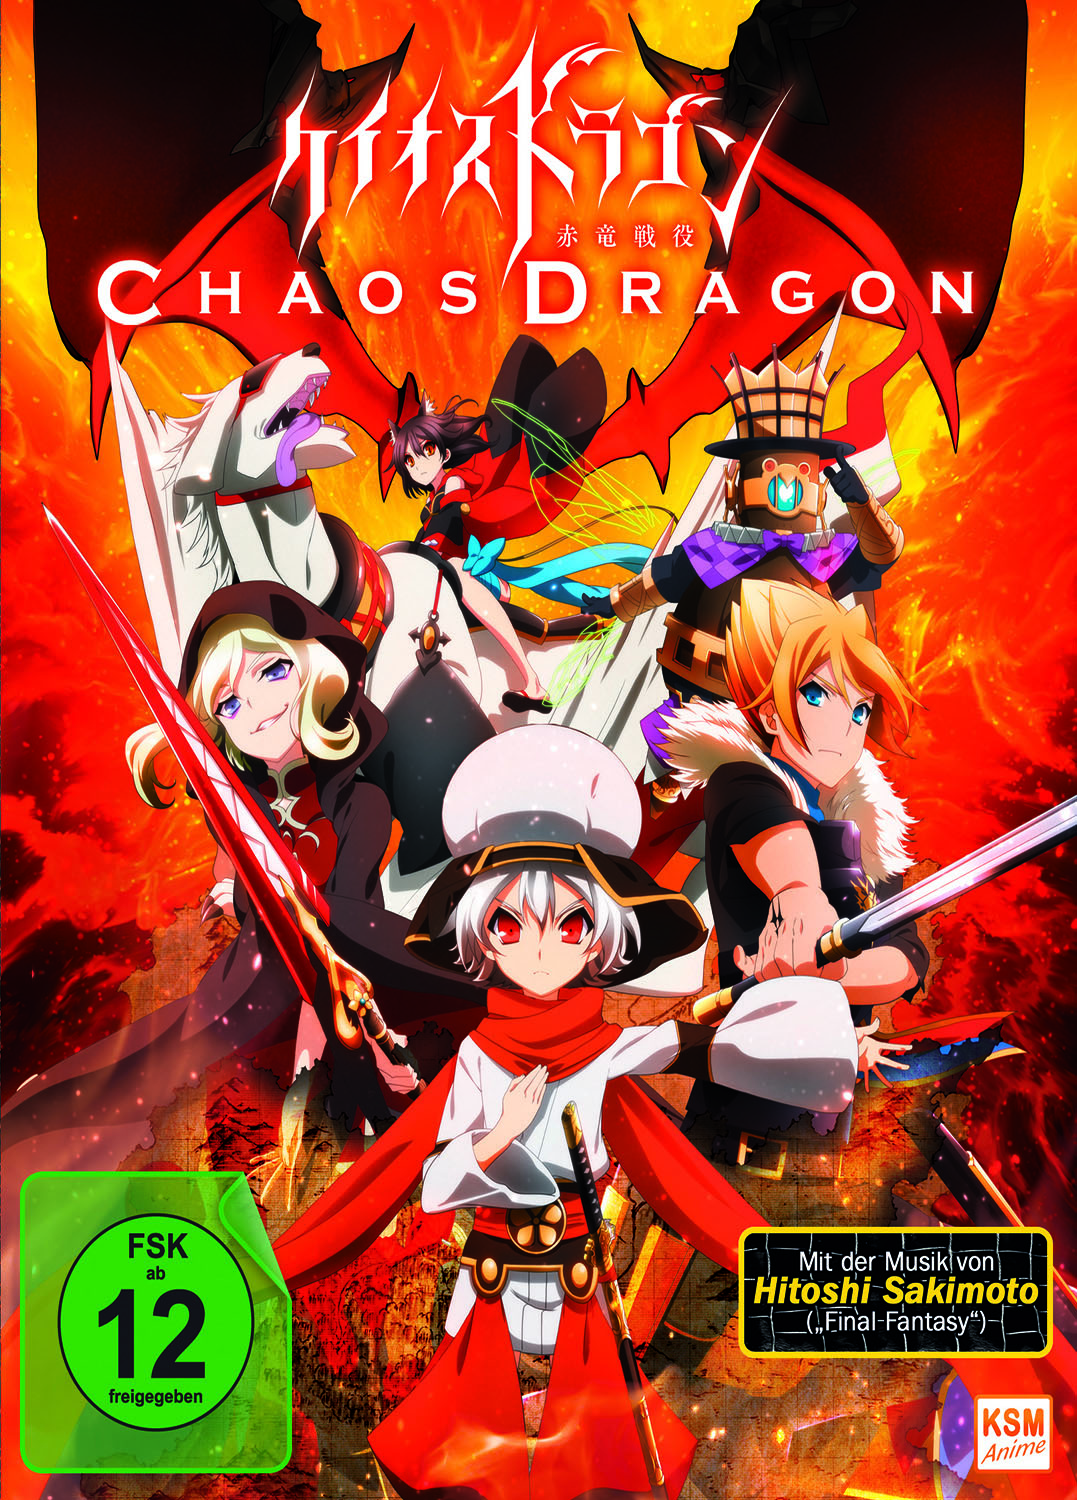 Chaos Dragon - Volume 1 Episode 01 - 04 im Sammelschuber (Blu-ray)